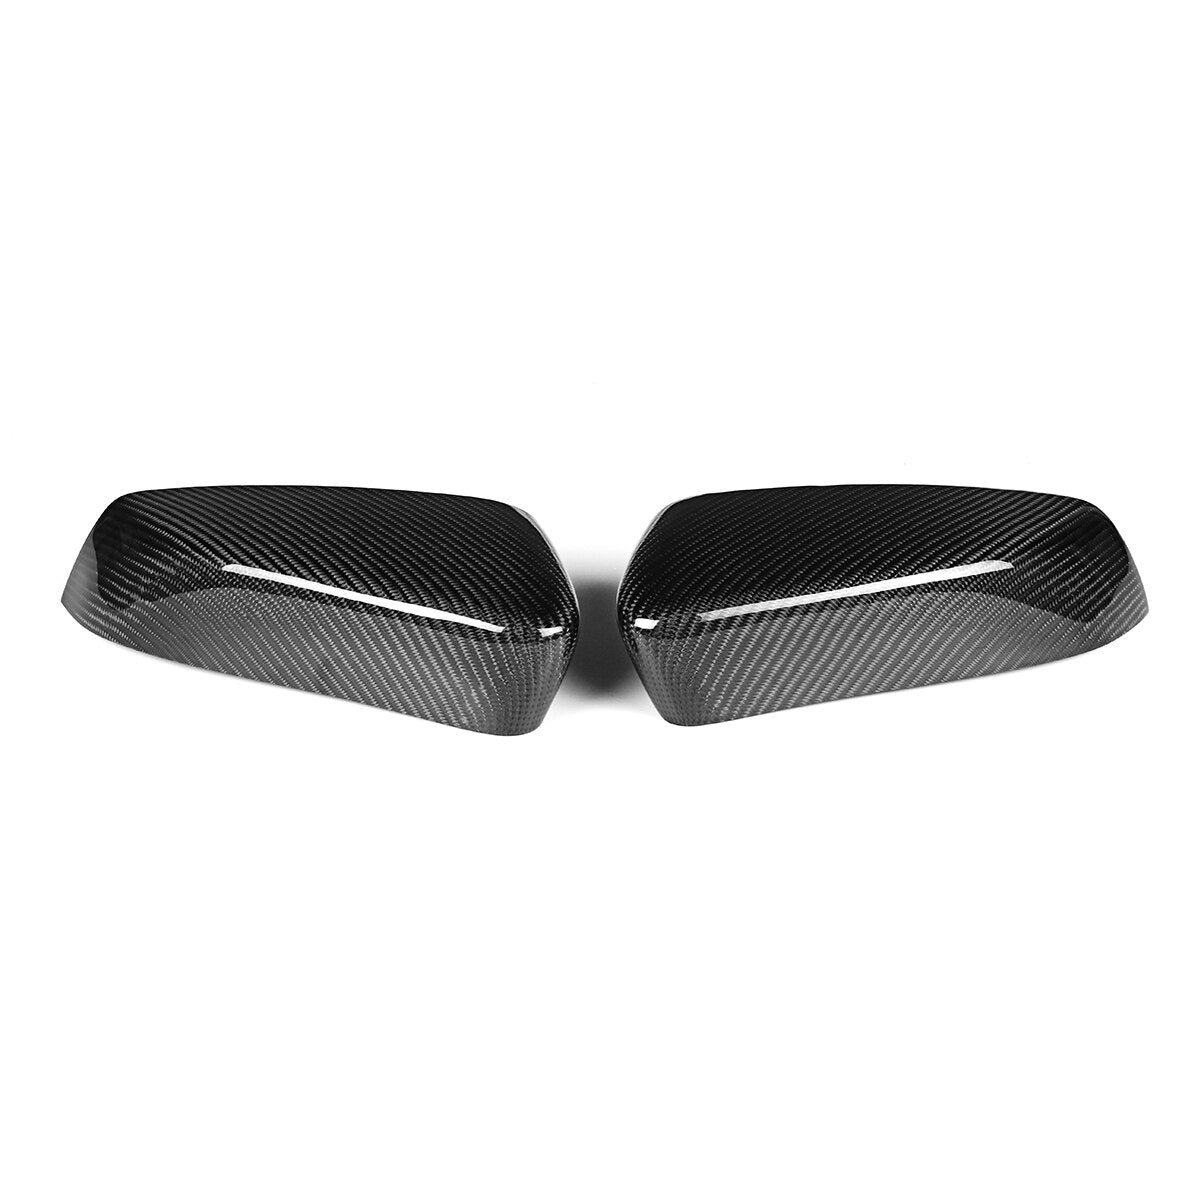 Carbon Fiber Side Mirror Covers For Ford Mustang 2010-2014